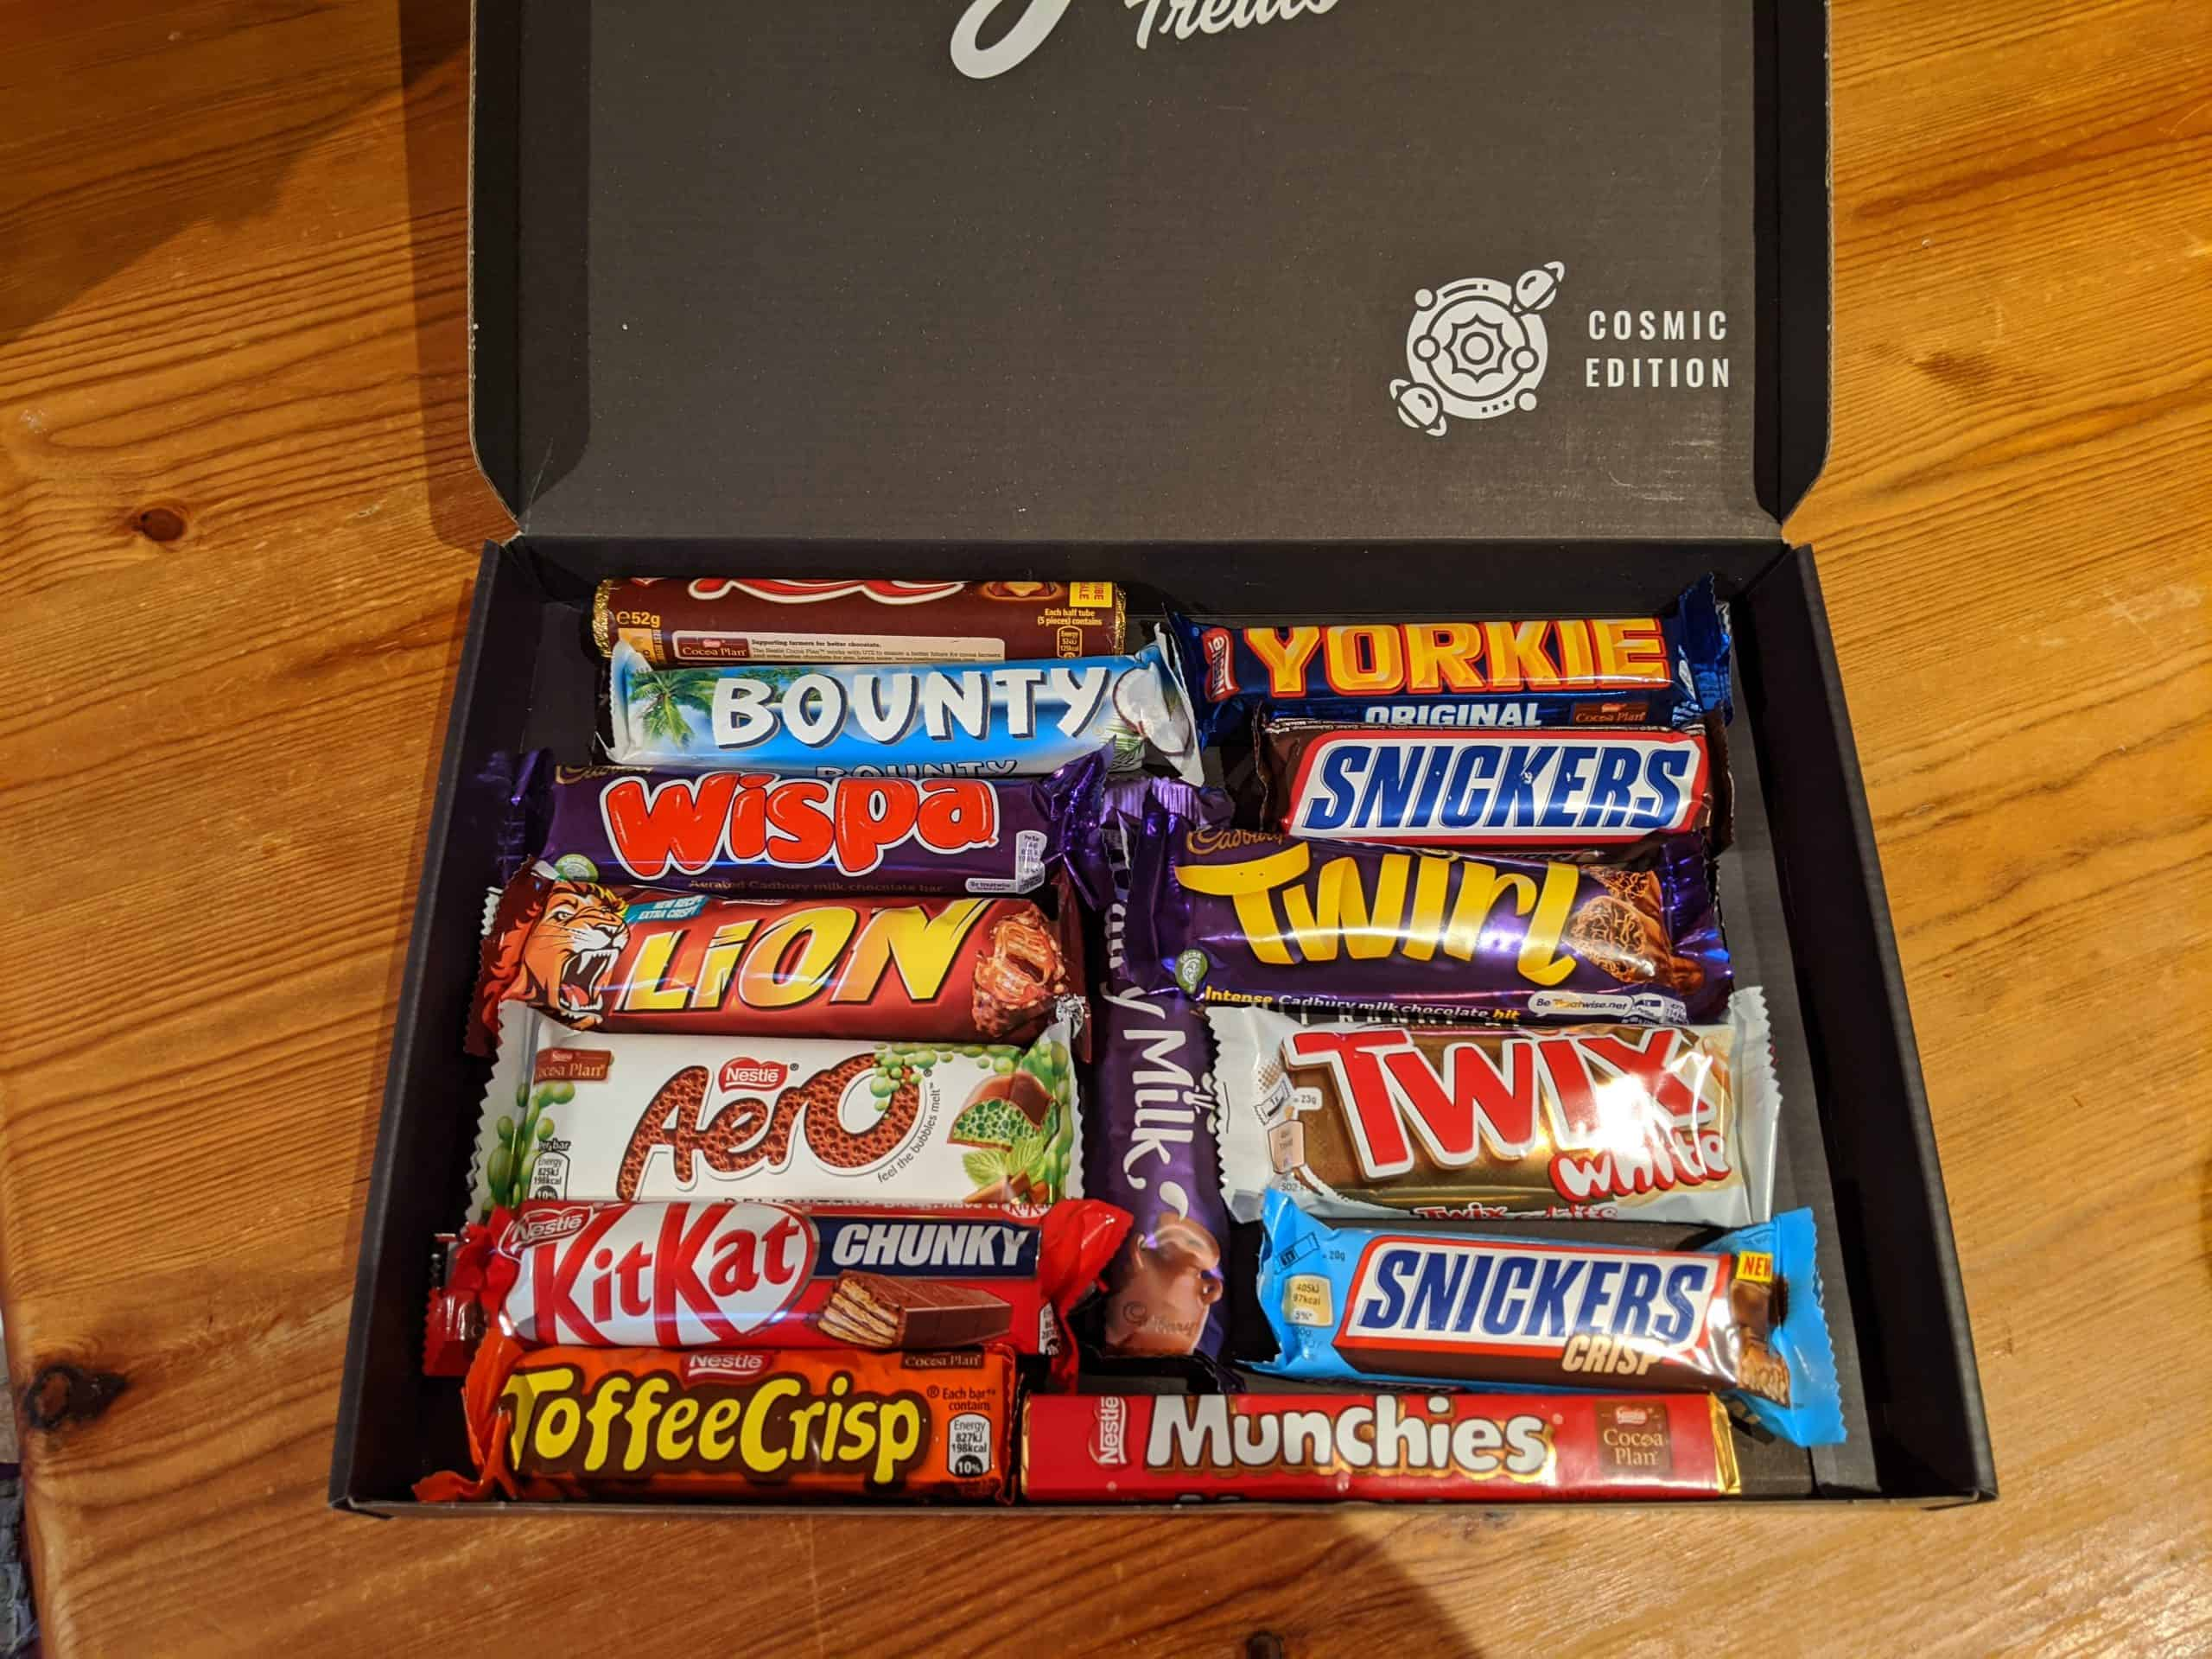 Clean as a whistle cleaning company - box of chocolates (open)